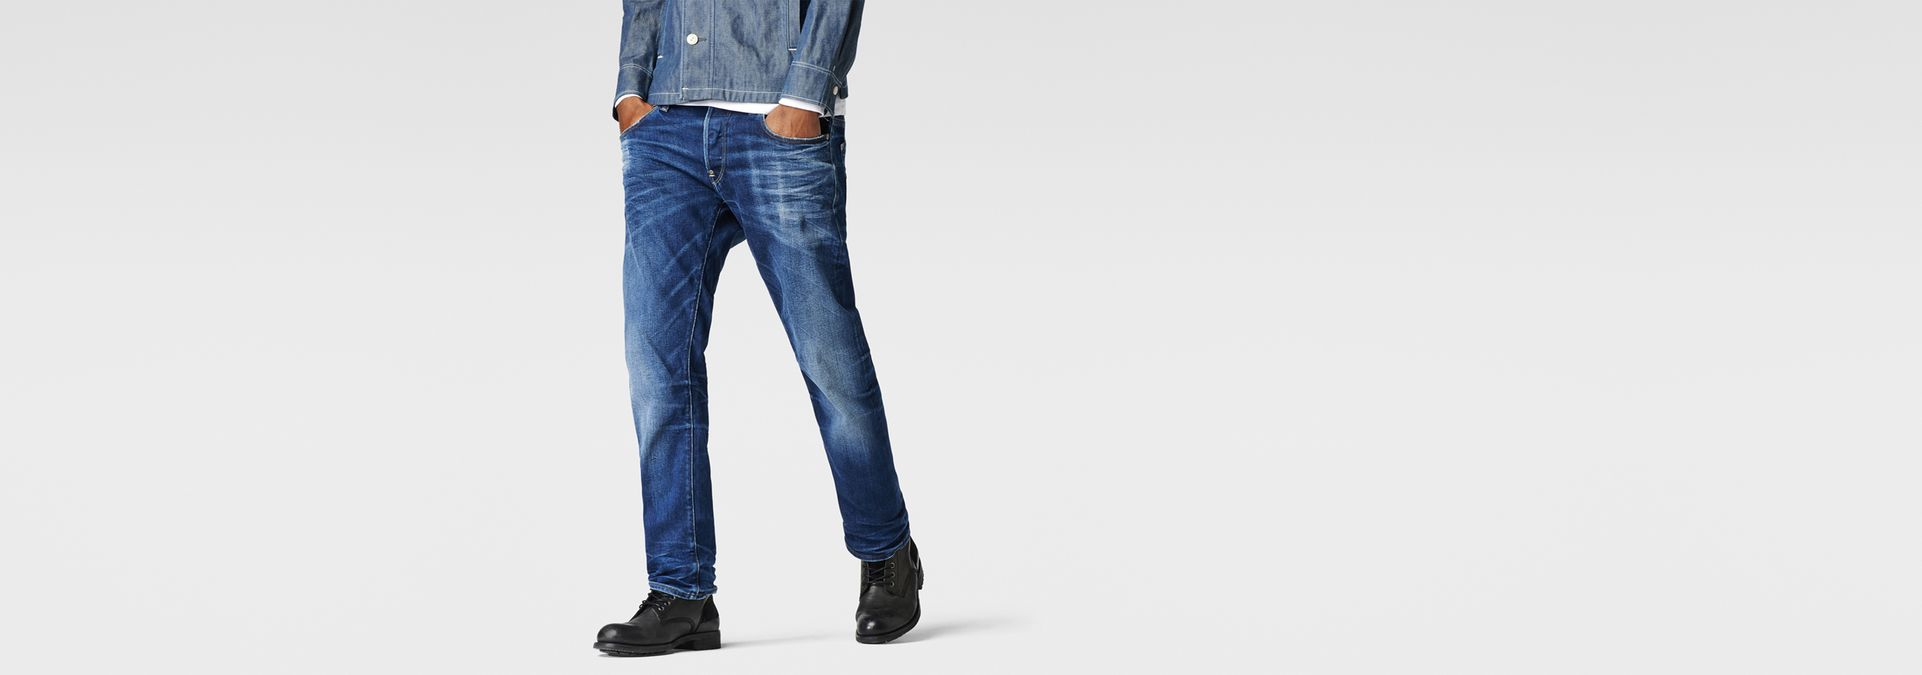 attacc straight jeans medium aged men g star raw. Black Bedroom Furniture Sets. Home Design Ideas